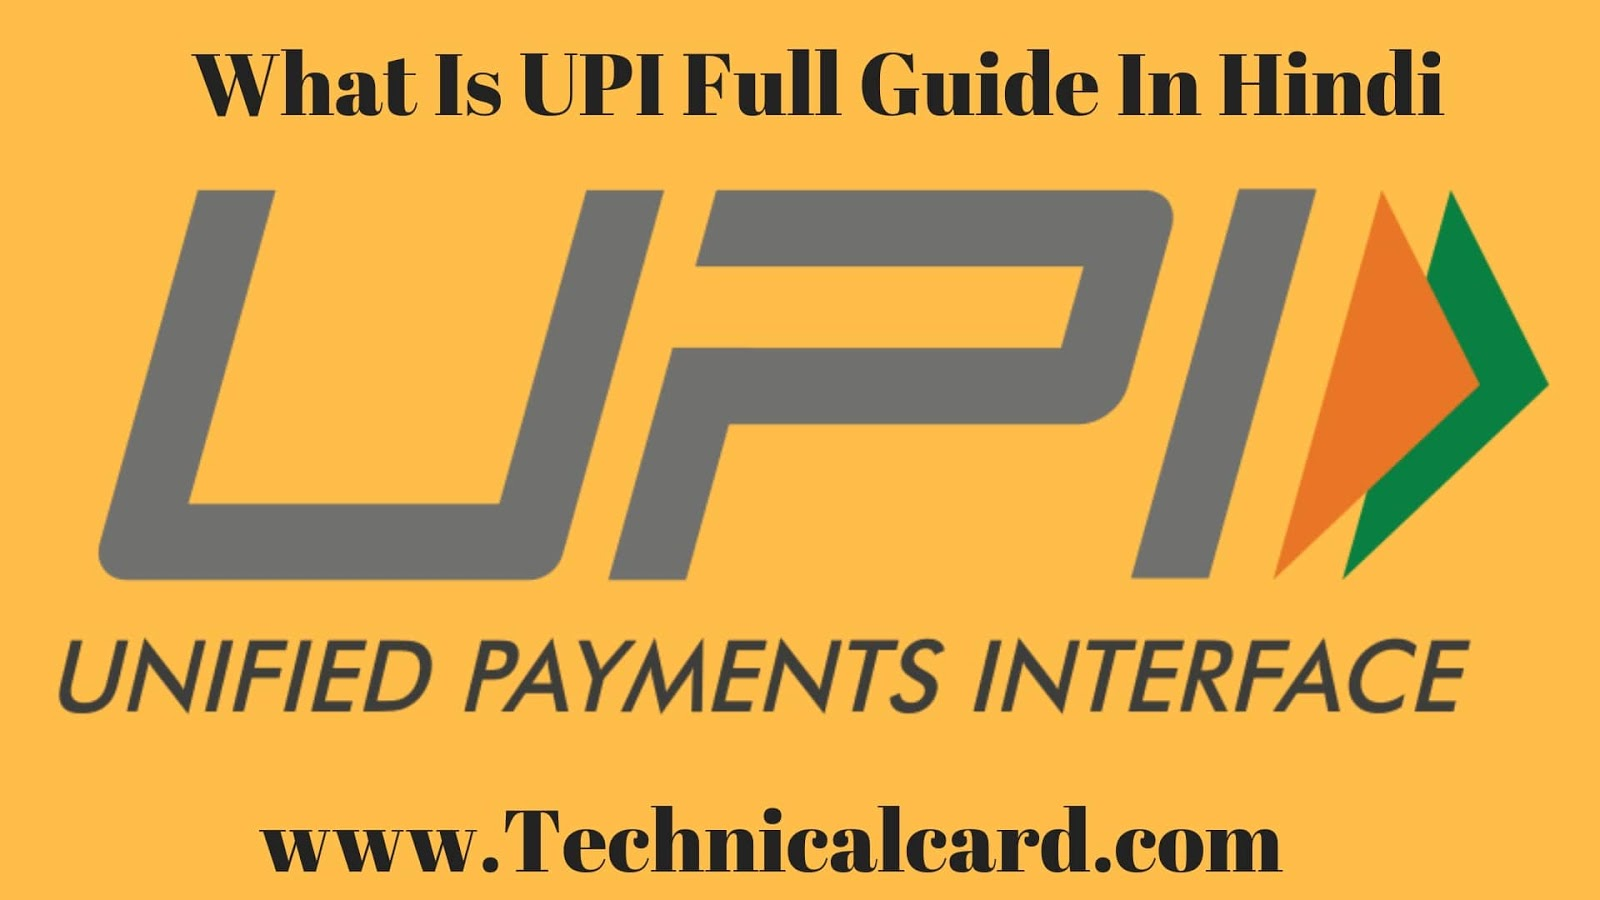 UPI Kya Hota Hai  Full Form Aur UPI Kaise Kaam Krta Hai Full Guide In Hindi, What is UPI In hindi, UPI kya hai full details, Upi kaise work krta hai,